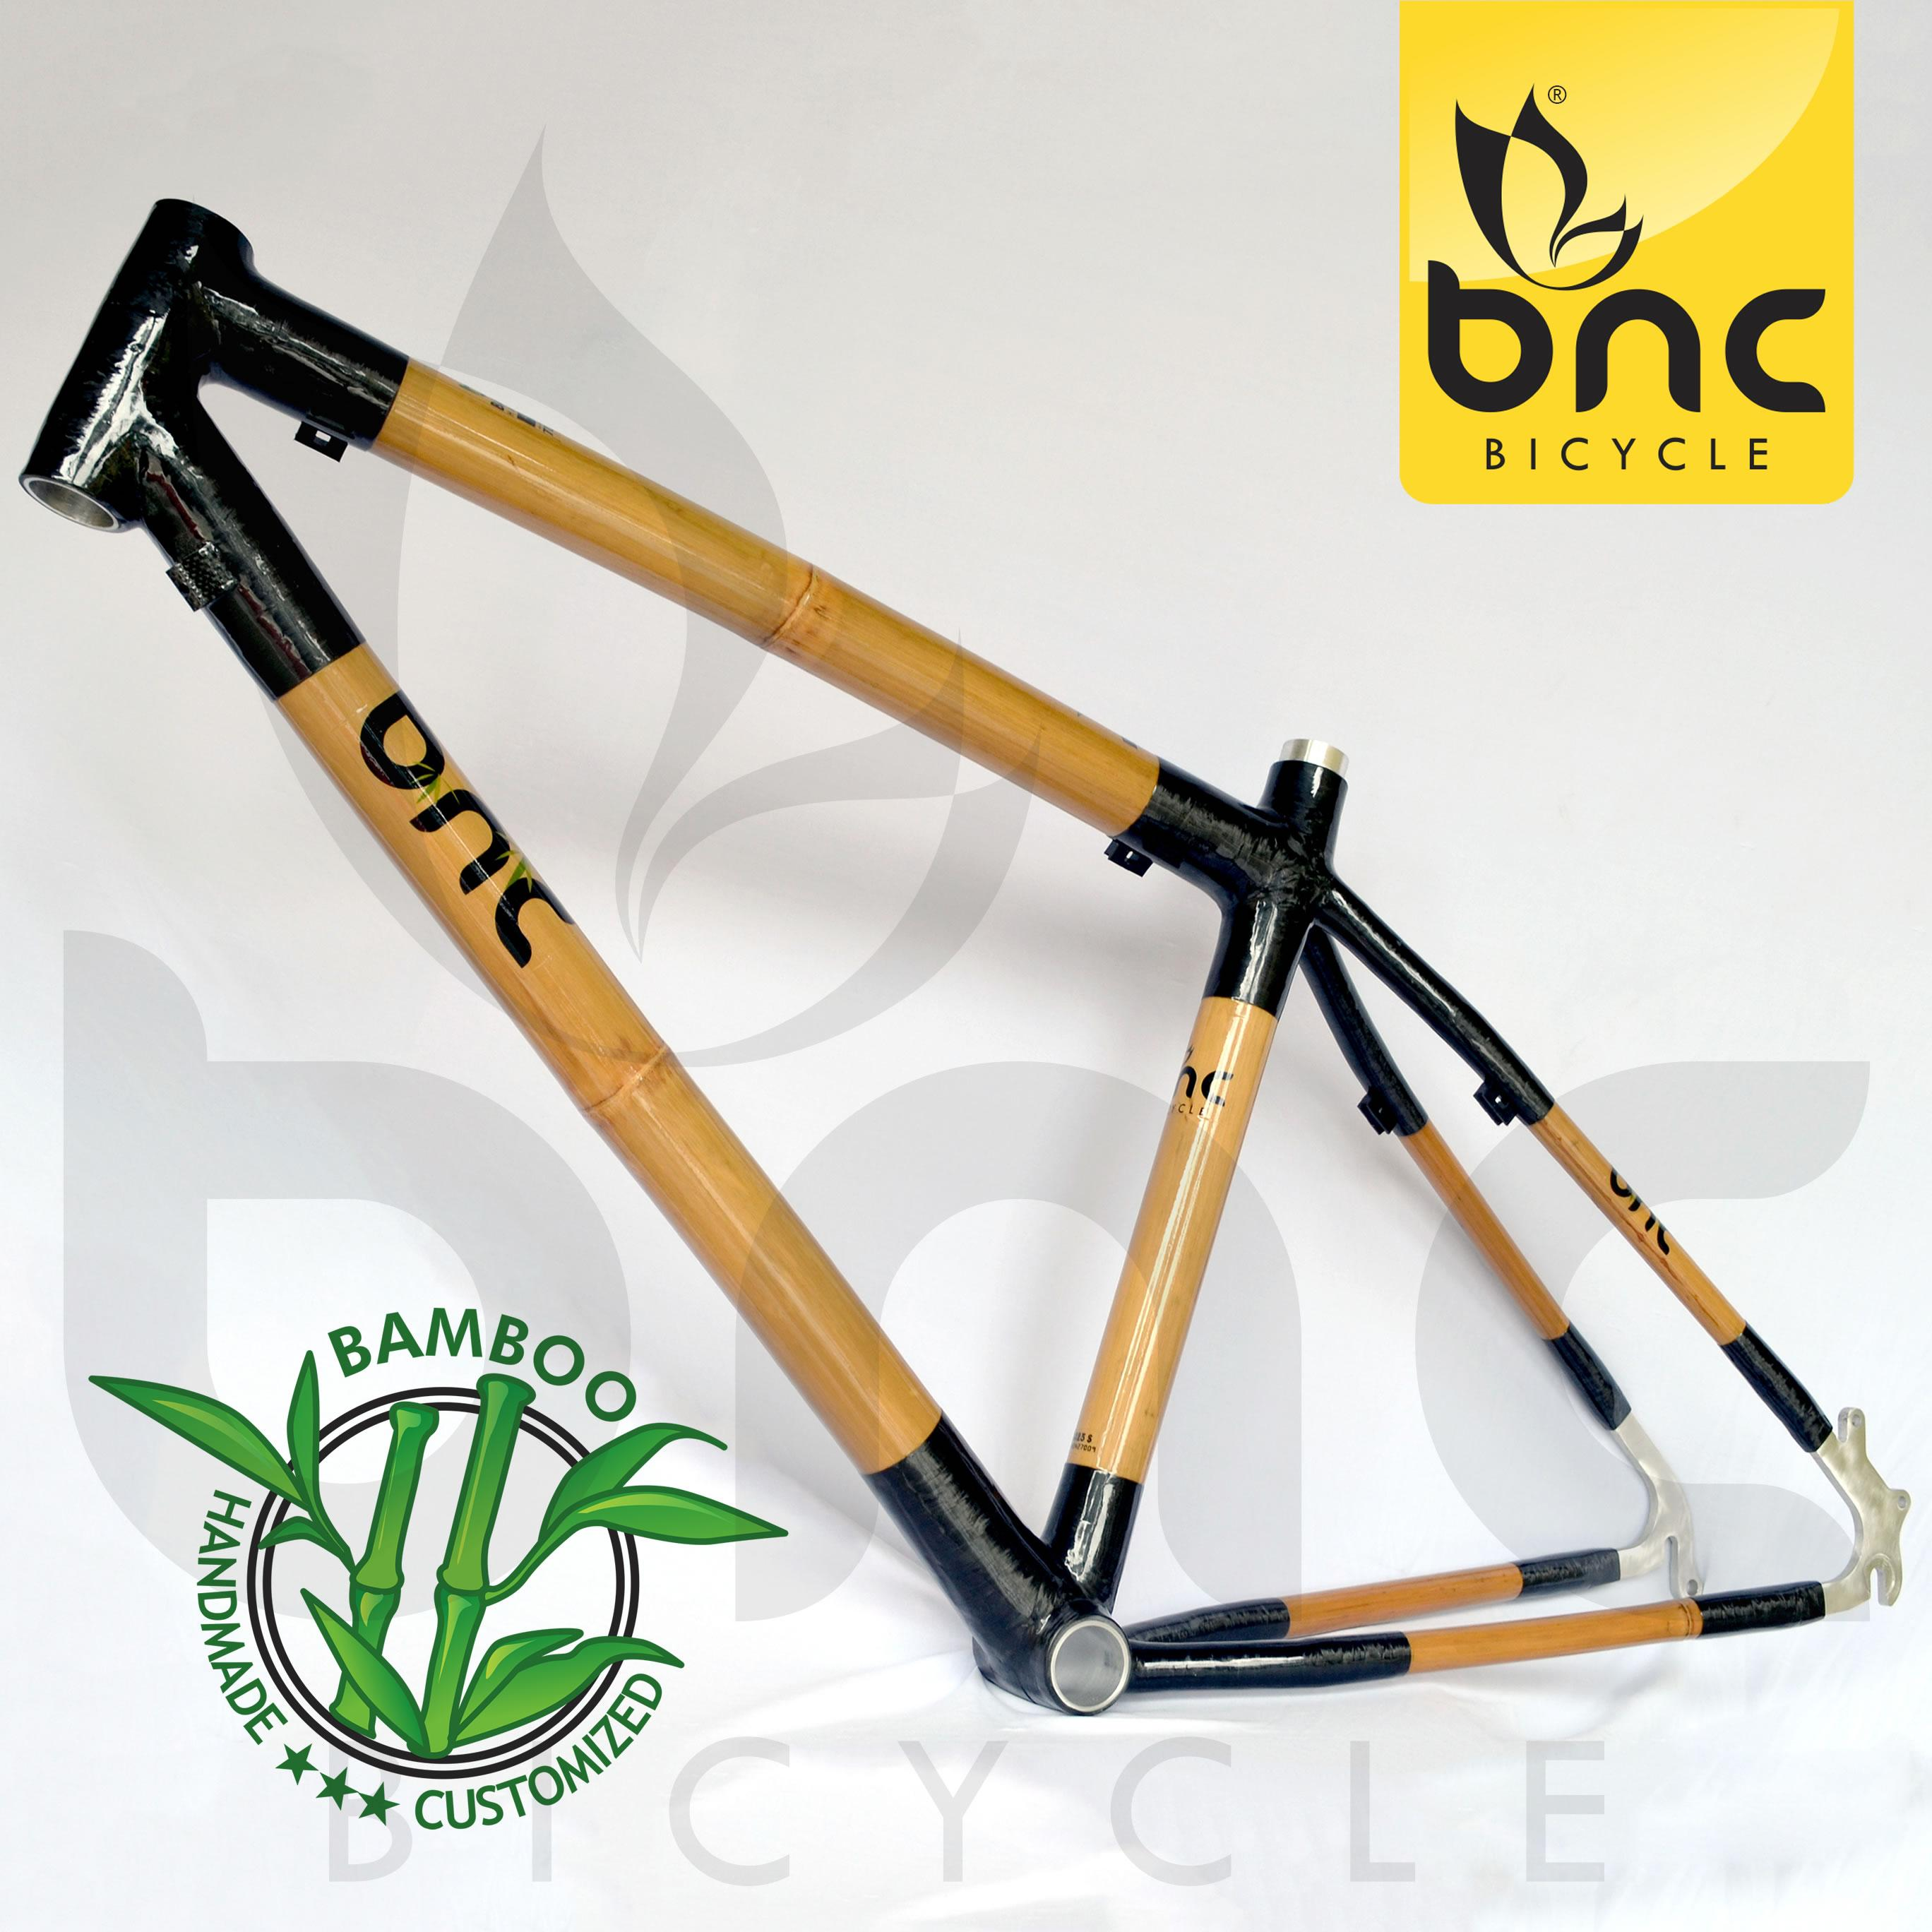 2016 sale special offer bicicleta ems carbon fiber bamboo mountain bike frame mountain bicycle frame cycling frame carbon fiber road bike frame carbon fiber - Mountain Bike Frames For Sale